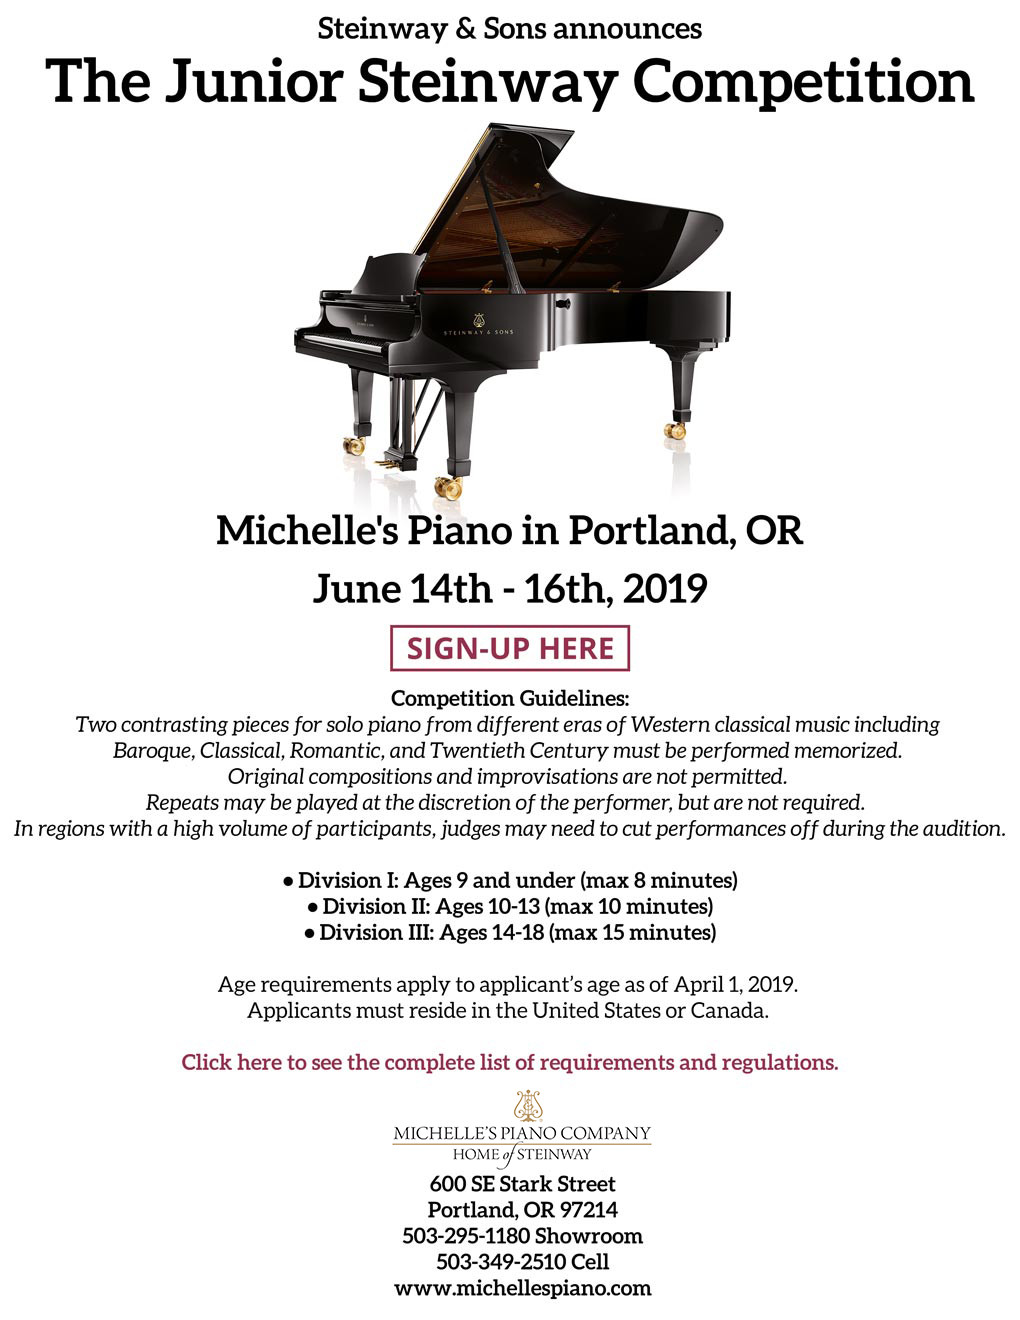 2019 young steinway competition at michelles pianos in portland or